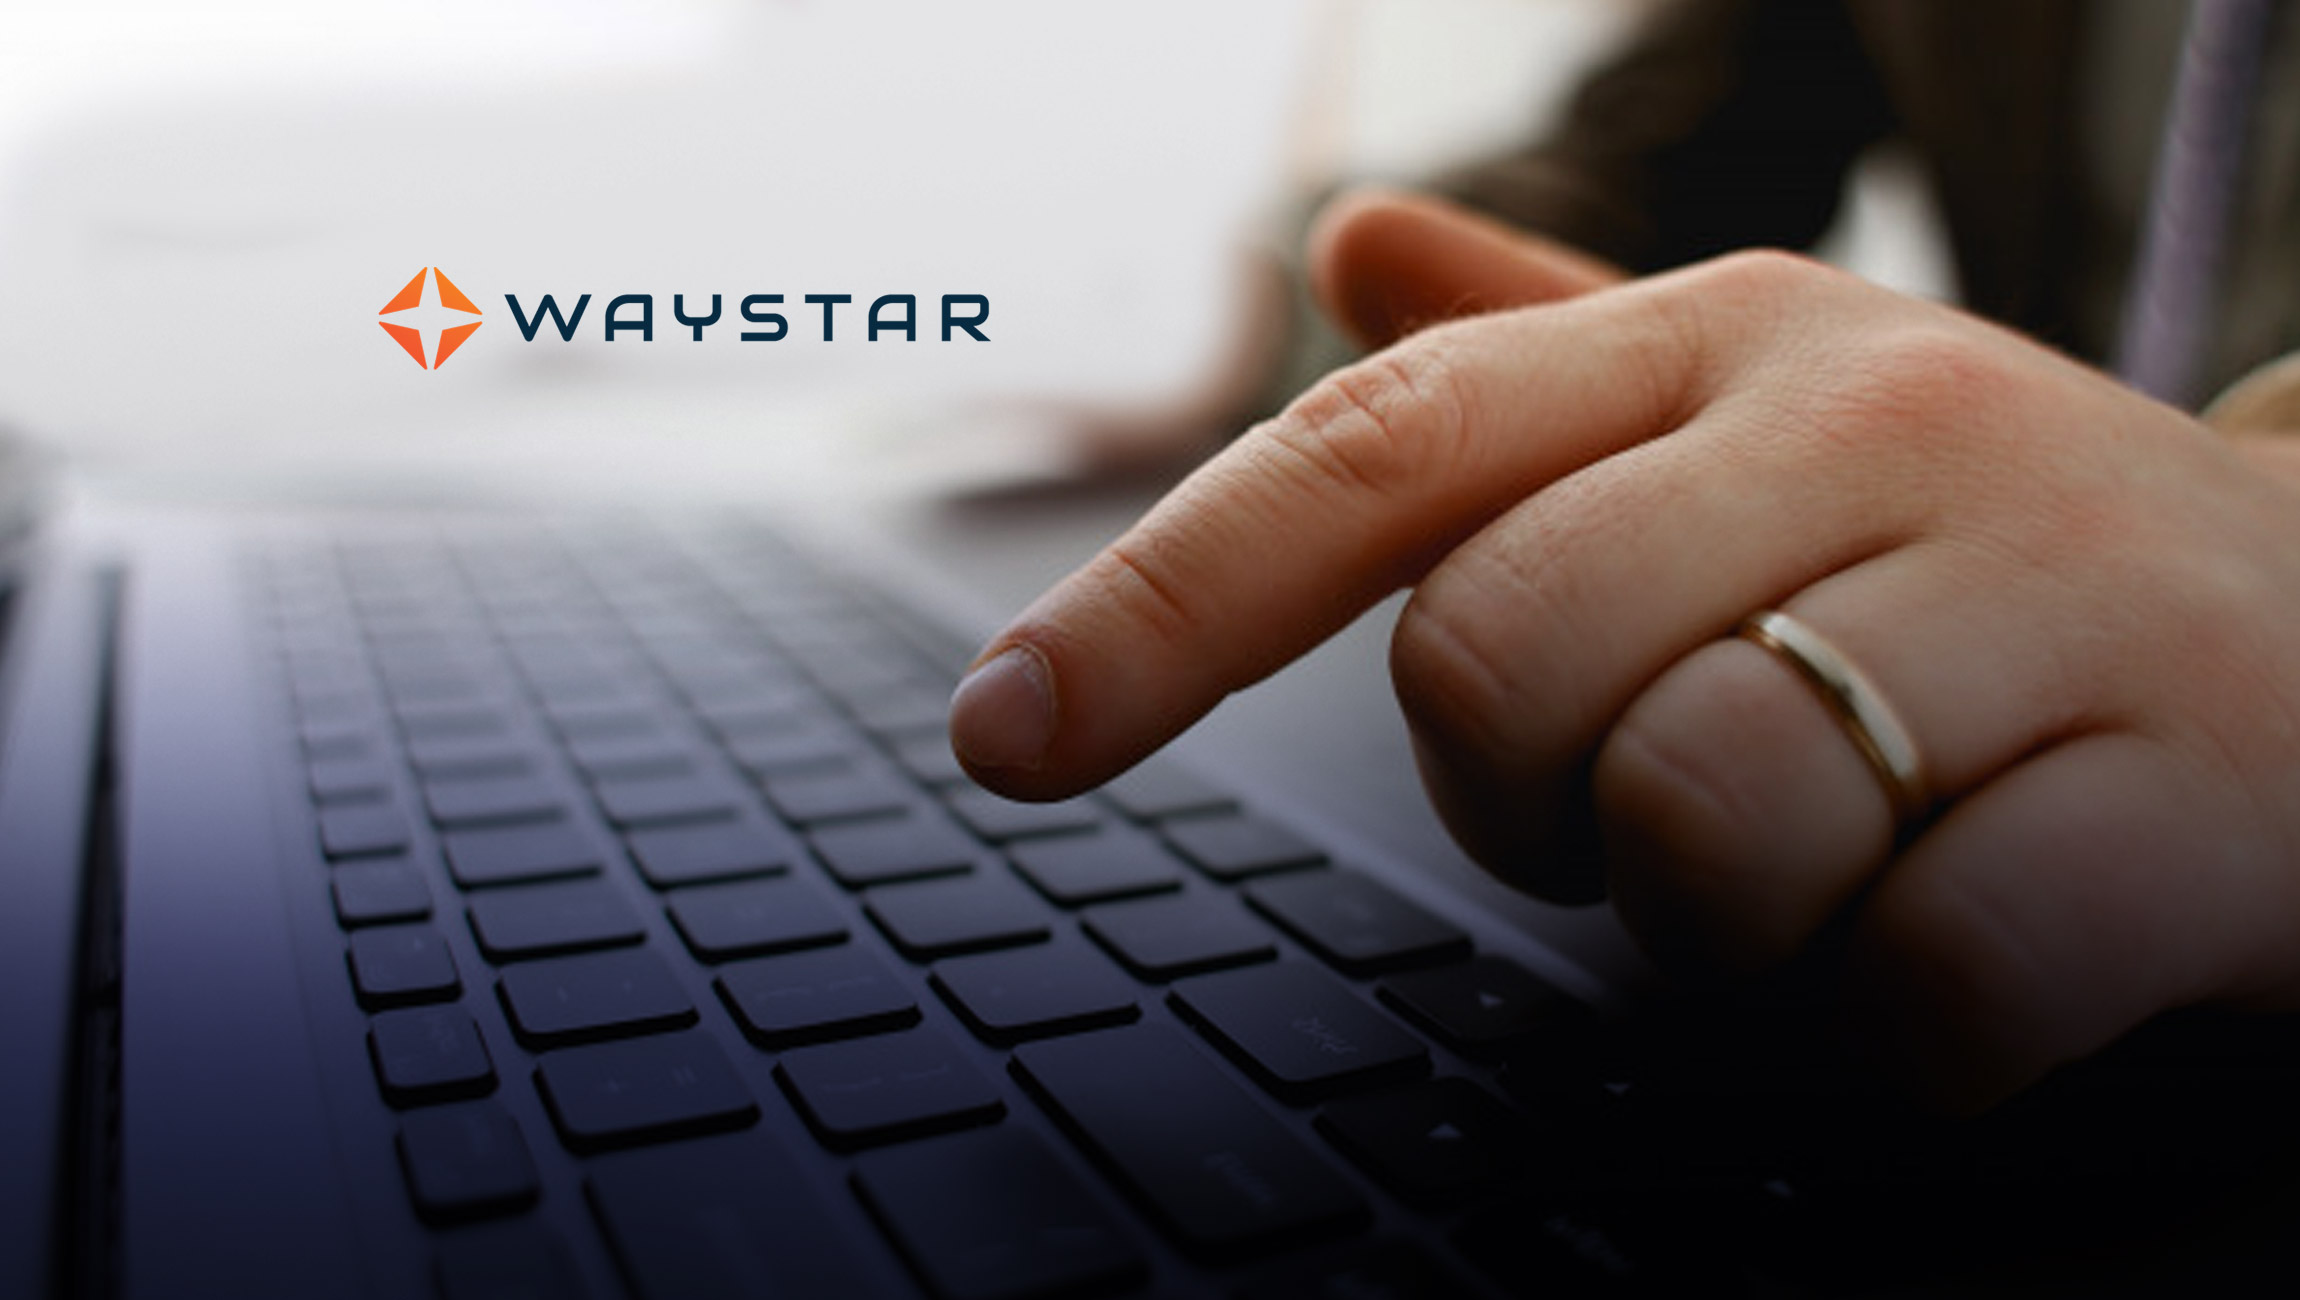 Waystar Launches Hubble, an Artificial Intelligence Platform that Automates Revenue Cycle Processes to Help Providers Collect Payment Faster and More Effectively